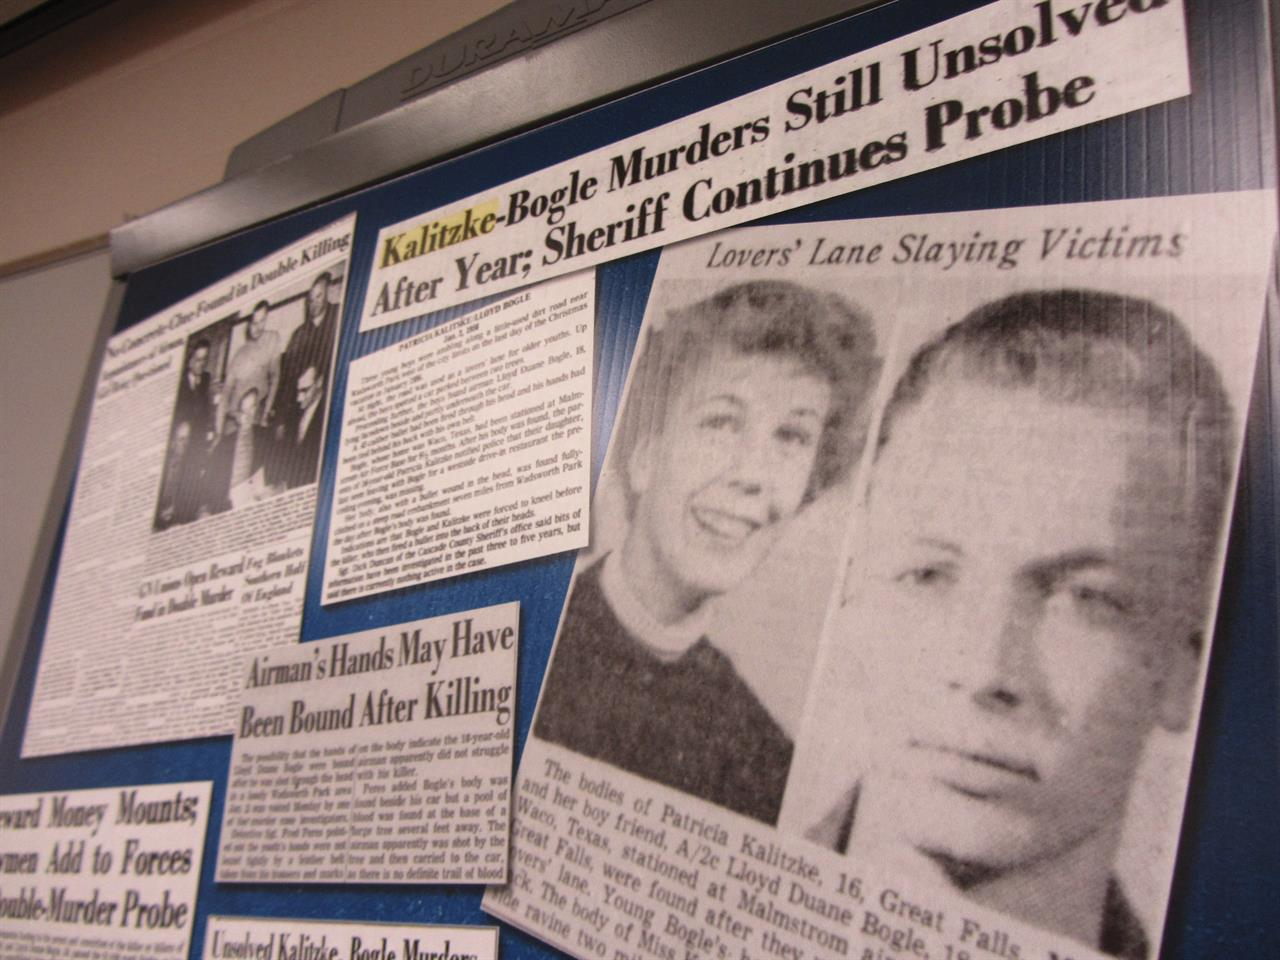 Clippings from the Great Falls Tribune that are displayed on Tuesday, June 8, 2021, in Great Falls, Mont., were part of the Cascade County Sheriff's Office investigative file into the 1956 murders of Patricia Kalitzke, 16, and Duane Bogle, 18, northwest of Great Falls. Investigators have closed the case after using forensic genealogy to identify Kenneth Gould, who is now deceased, as having likely committed the murders. (Traci Rosenbaum/The Great Falls Tribune via AP)